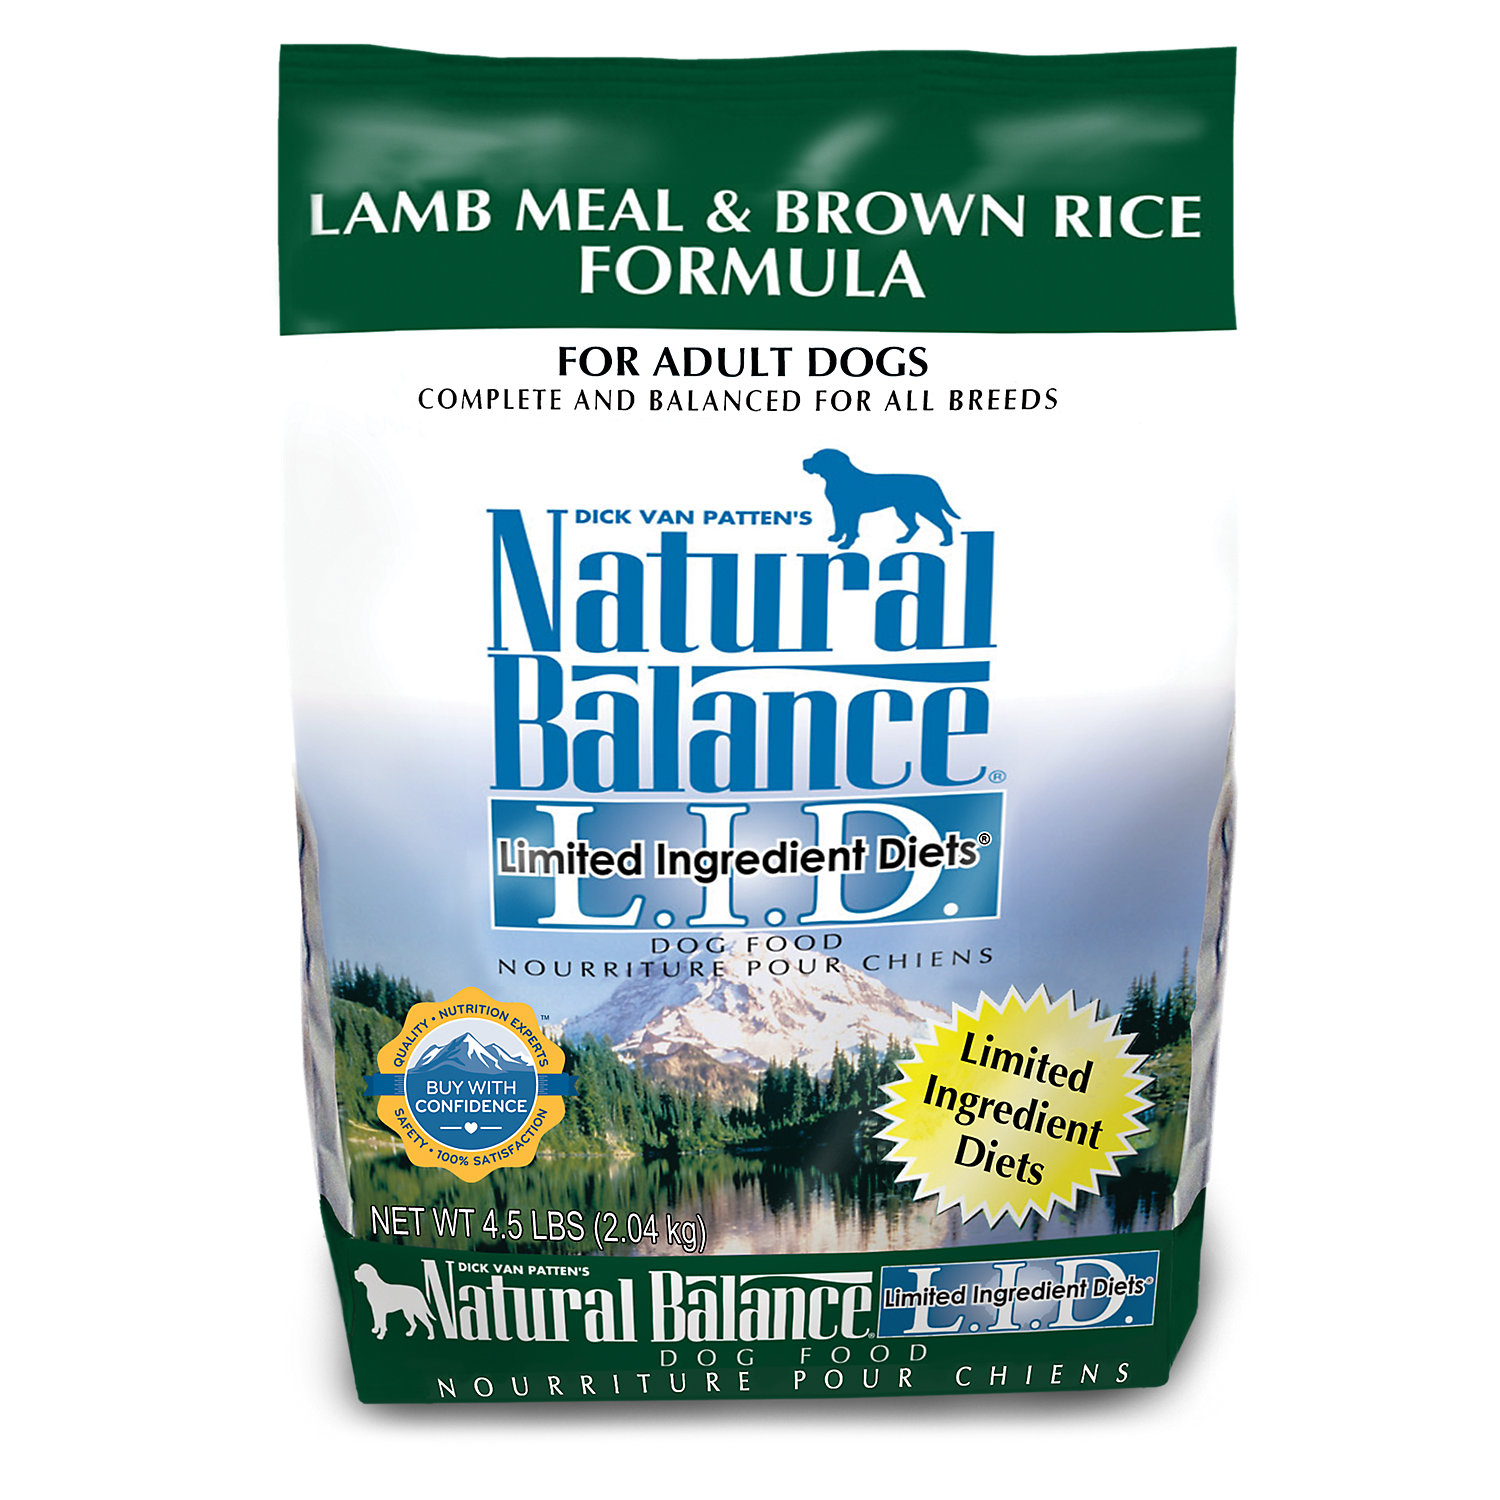 Natural Balance L.i.d. Limited Ingredient Diets Lamb Meal Brown Rice Dog Food 4.5 Lbs.